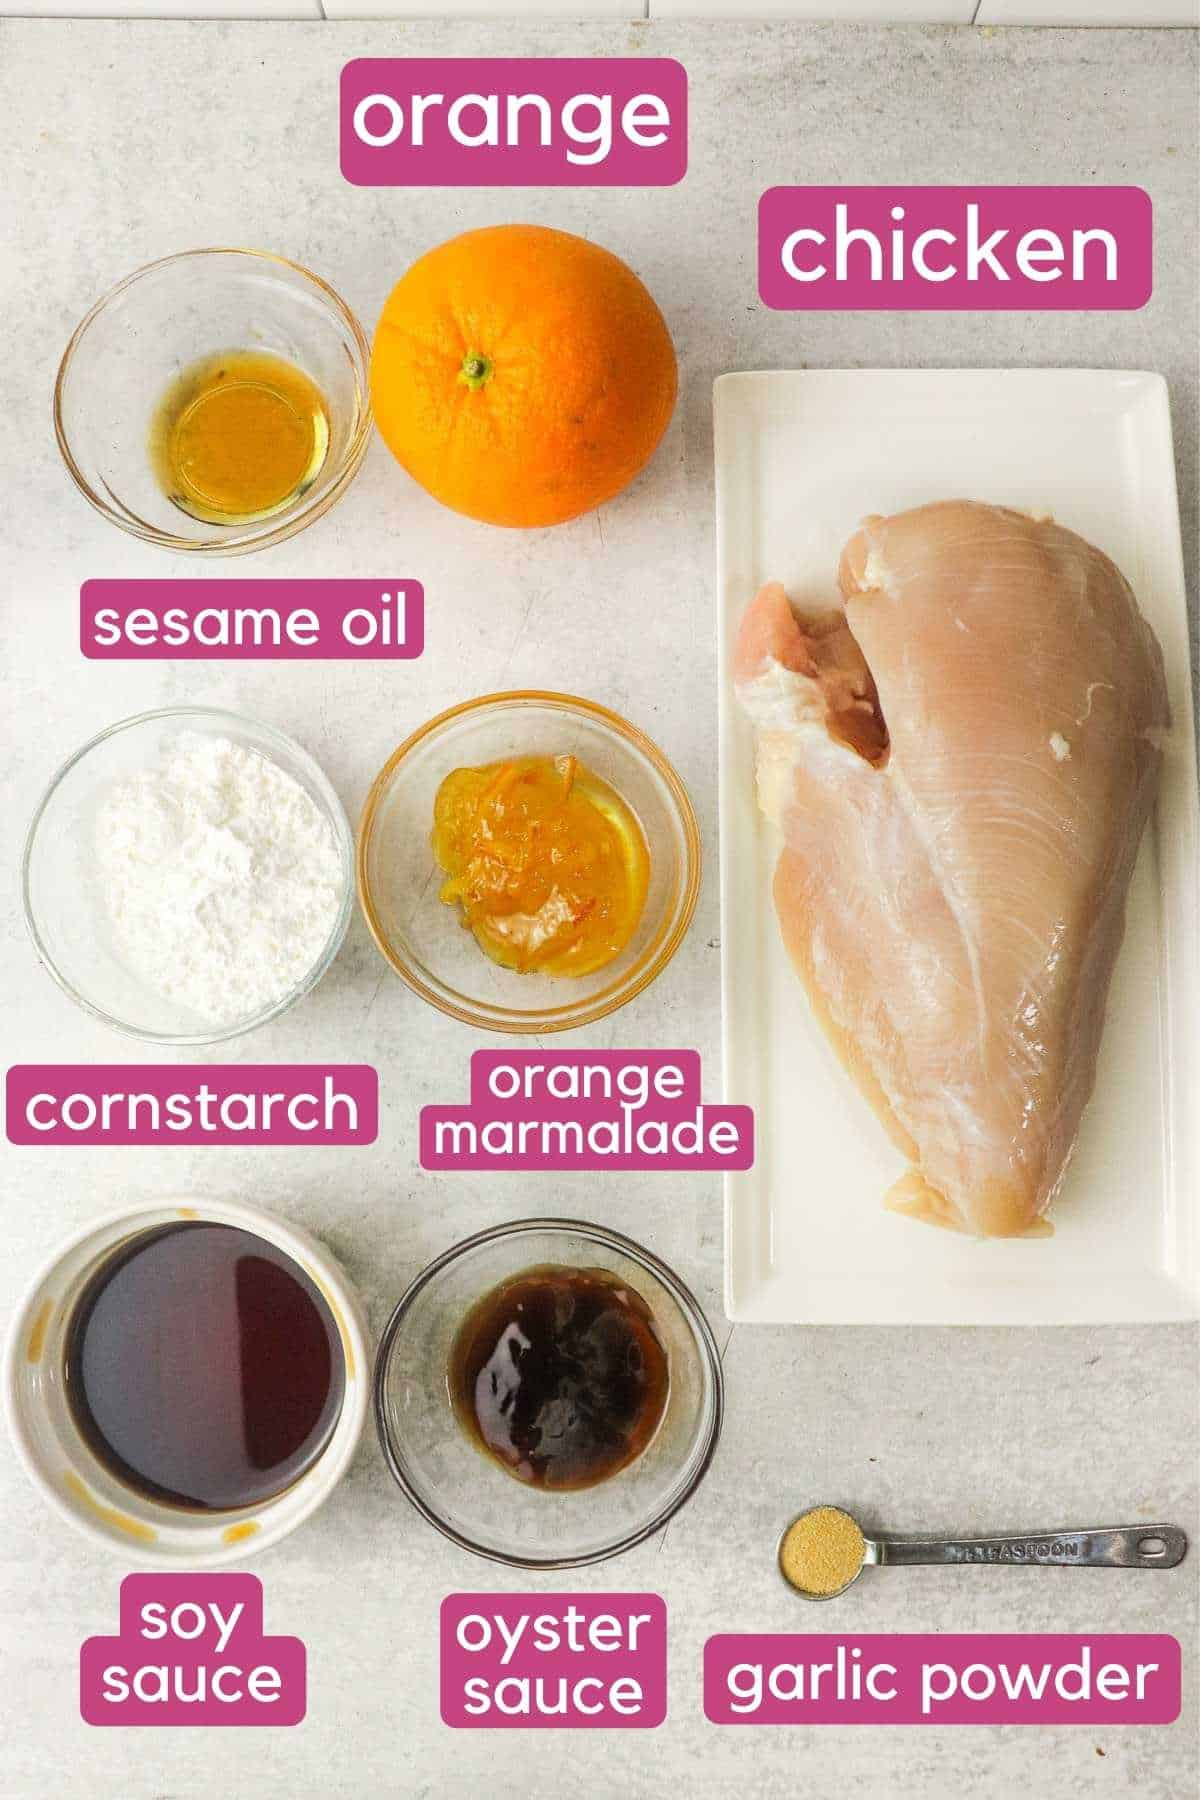 Ingredients for air fryer orange chicken.